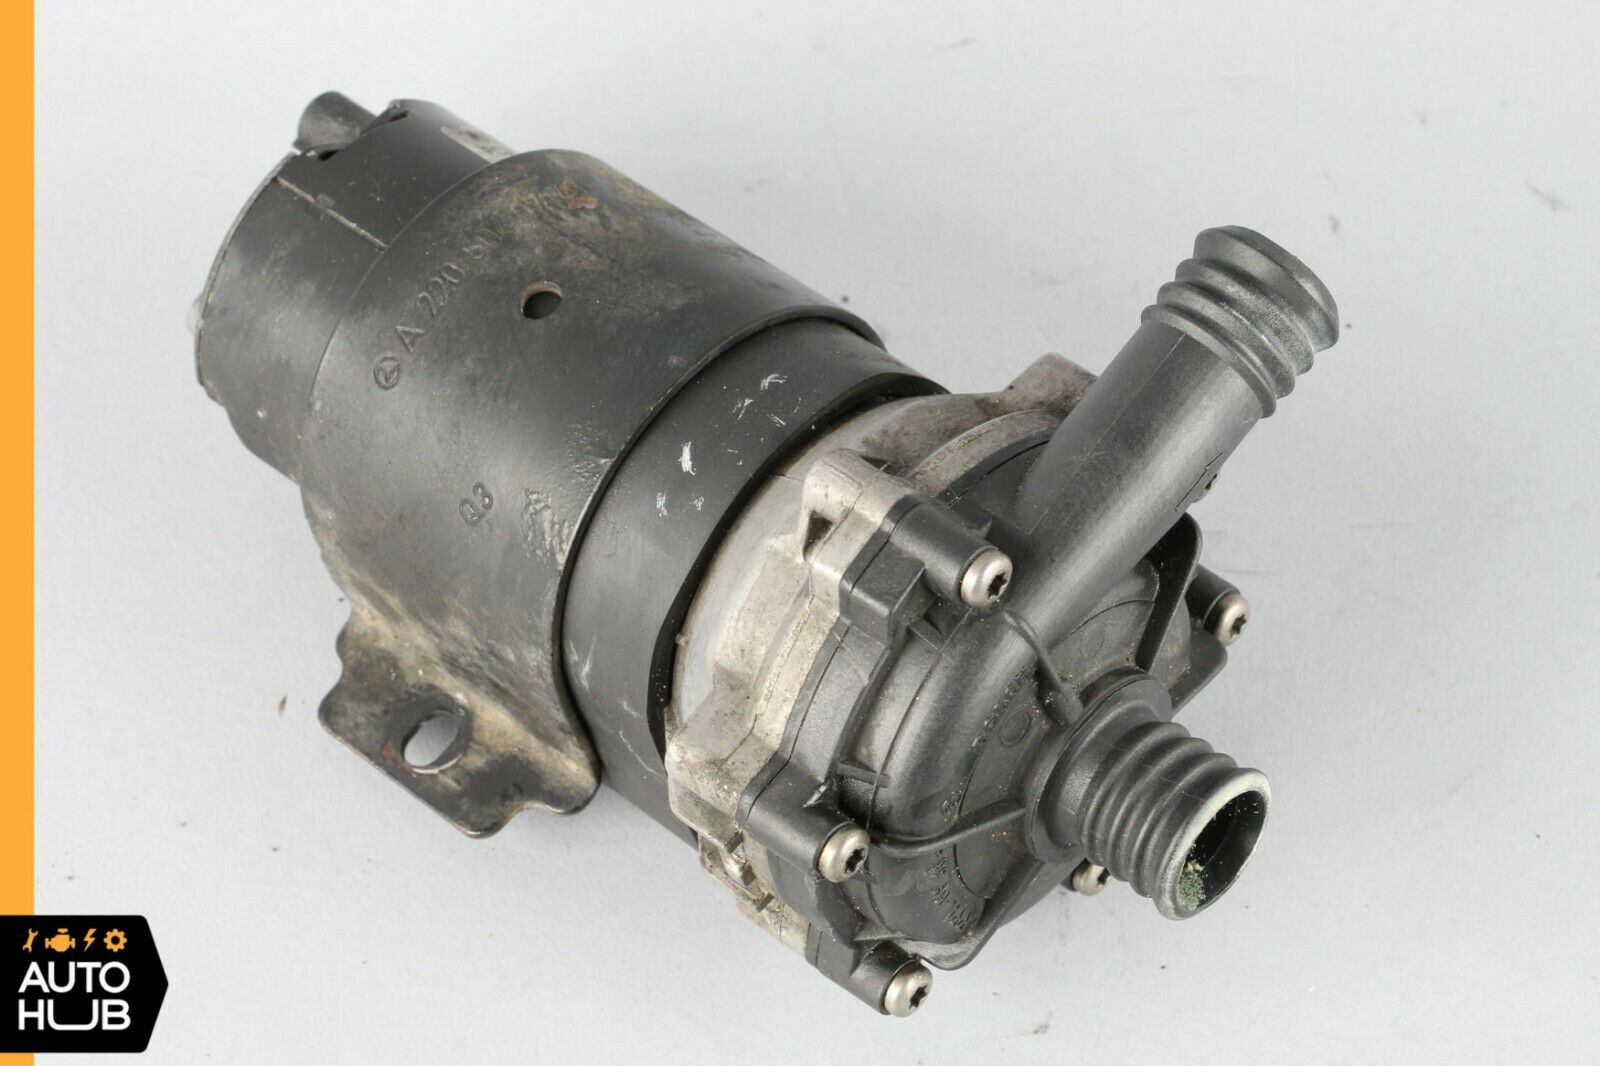 Used Mercedes-Benz E55 AMG Water Pumps for Sale